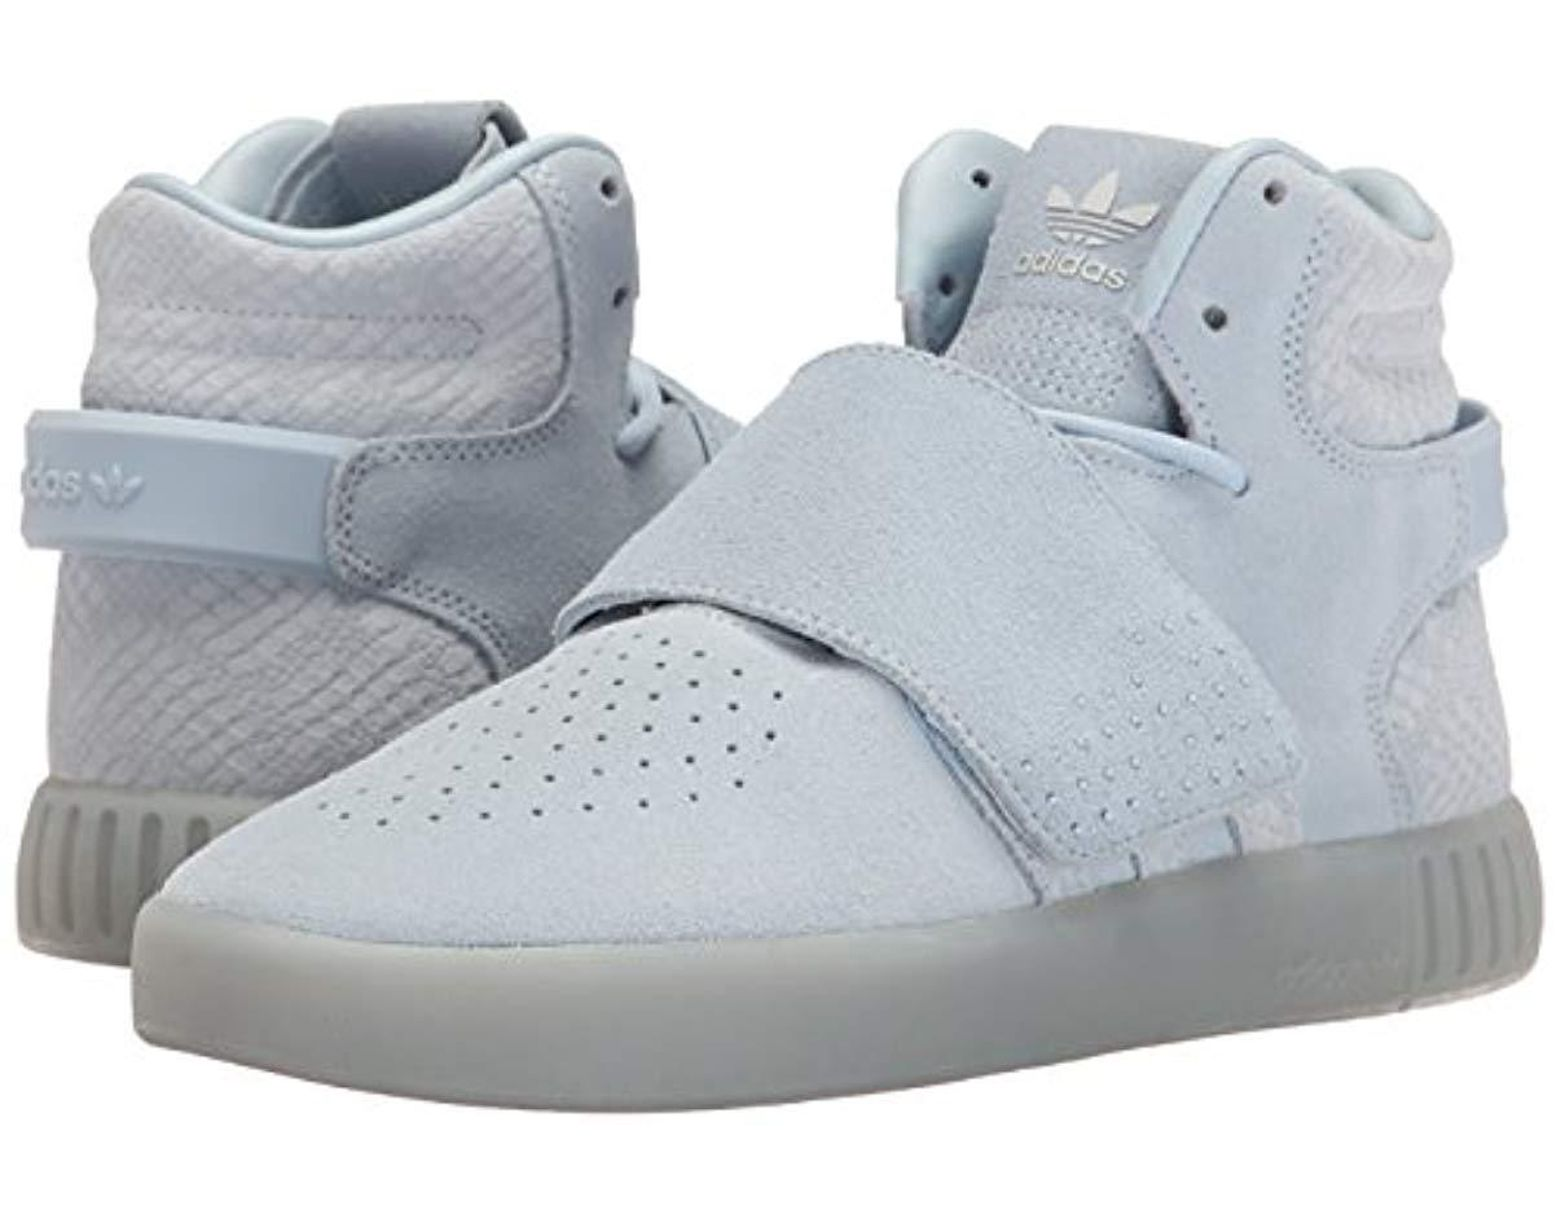 best sneakers b135d a87f7 Lyst - adidas Originals Tubular Invader Strap W Fashion Sneaker in Blue -  Save 85%